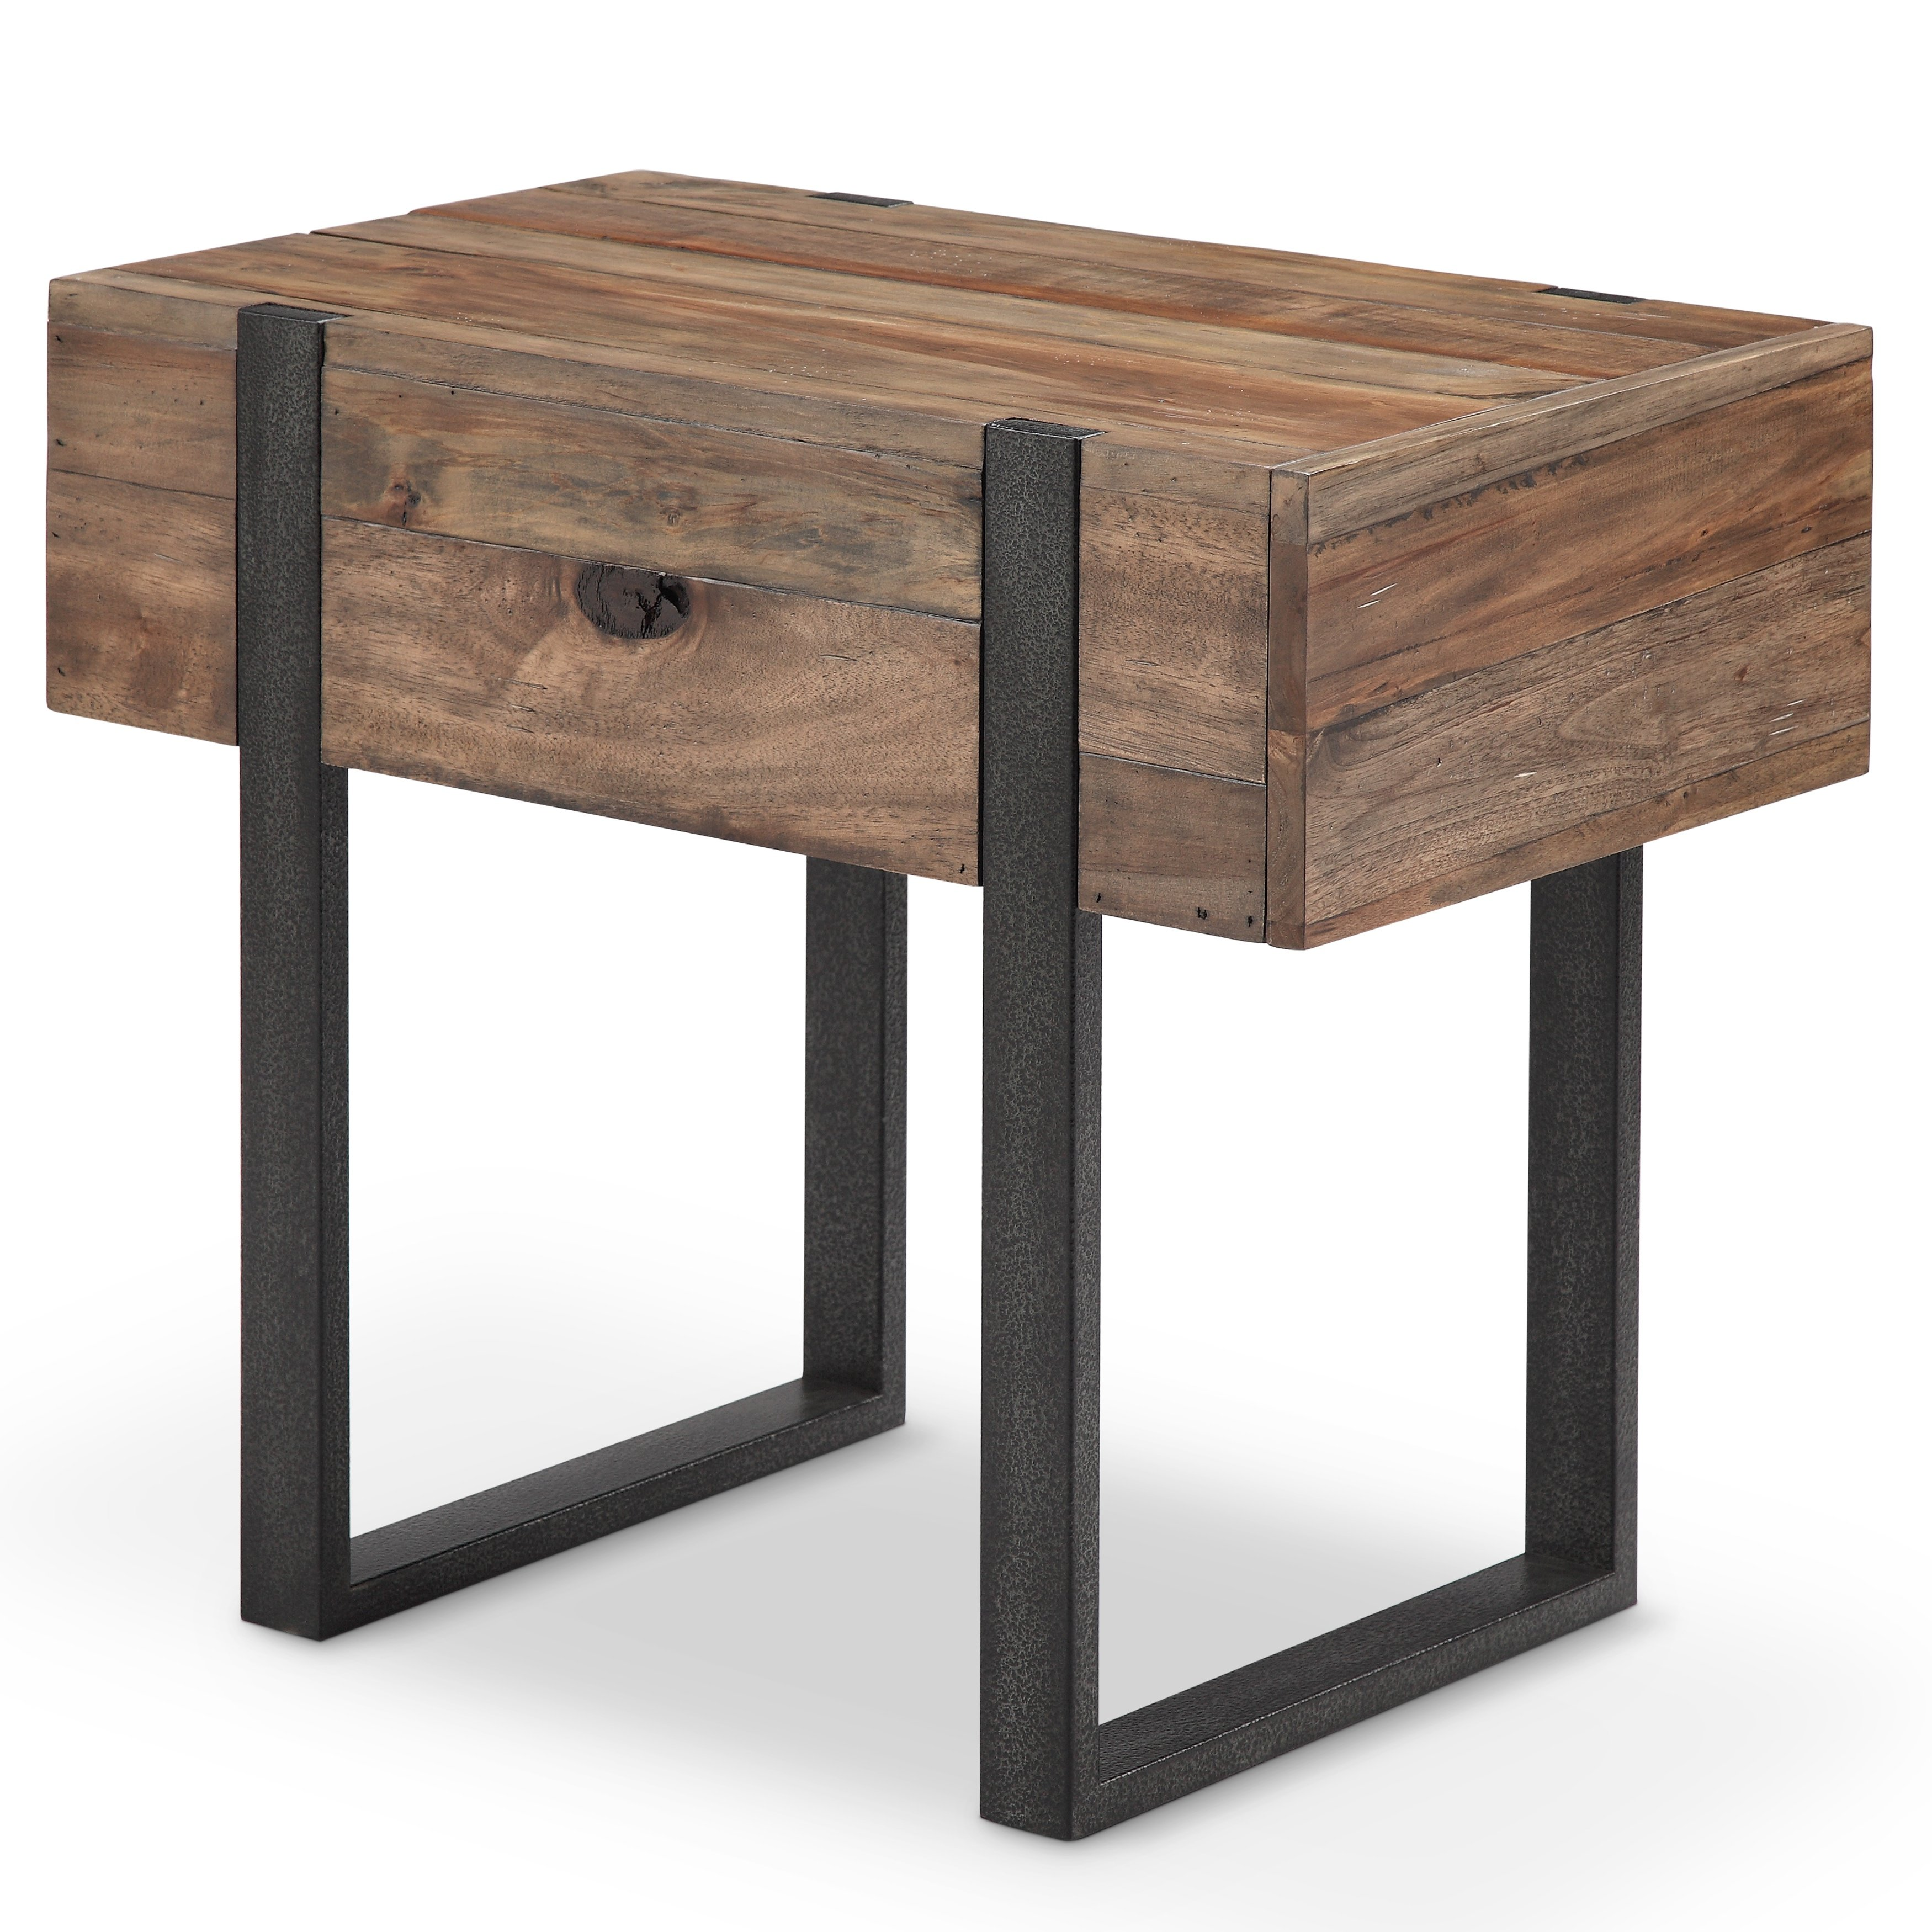 union rustic sharri modern end table reviews tables console next patio set ethan allen coaster fine furniture tall side for living room riverside promenade desk outdoor accents